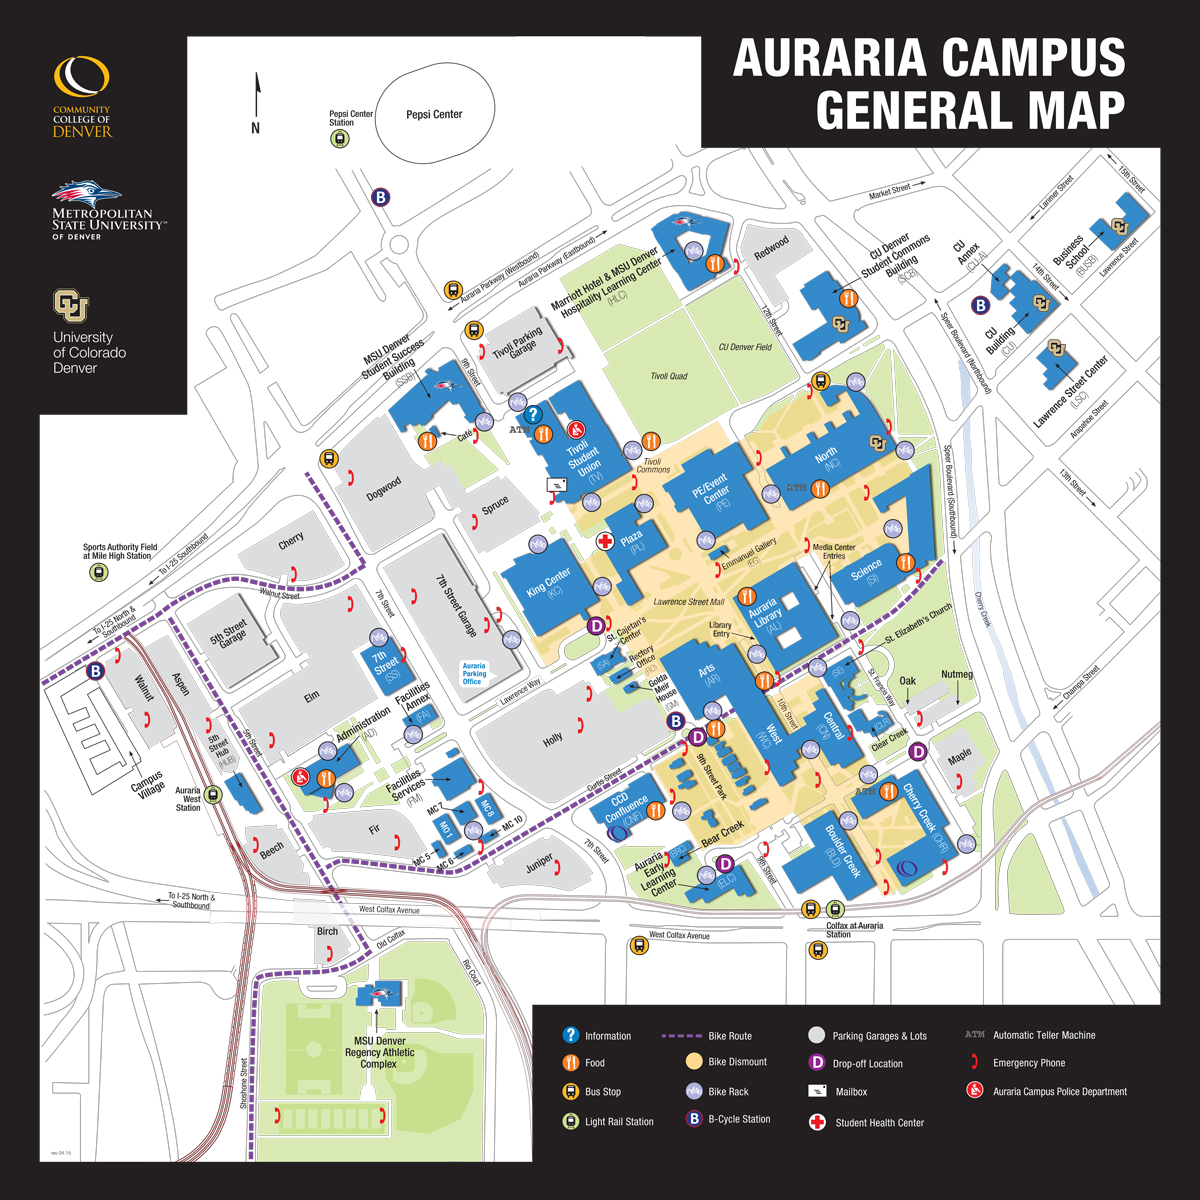 Auraria Campus General Map